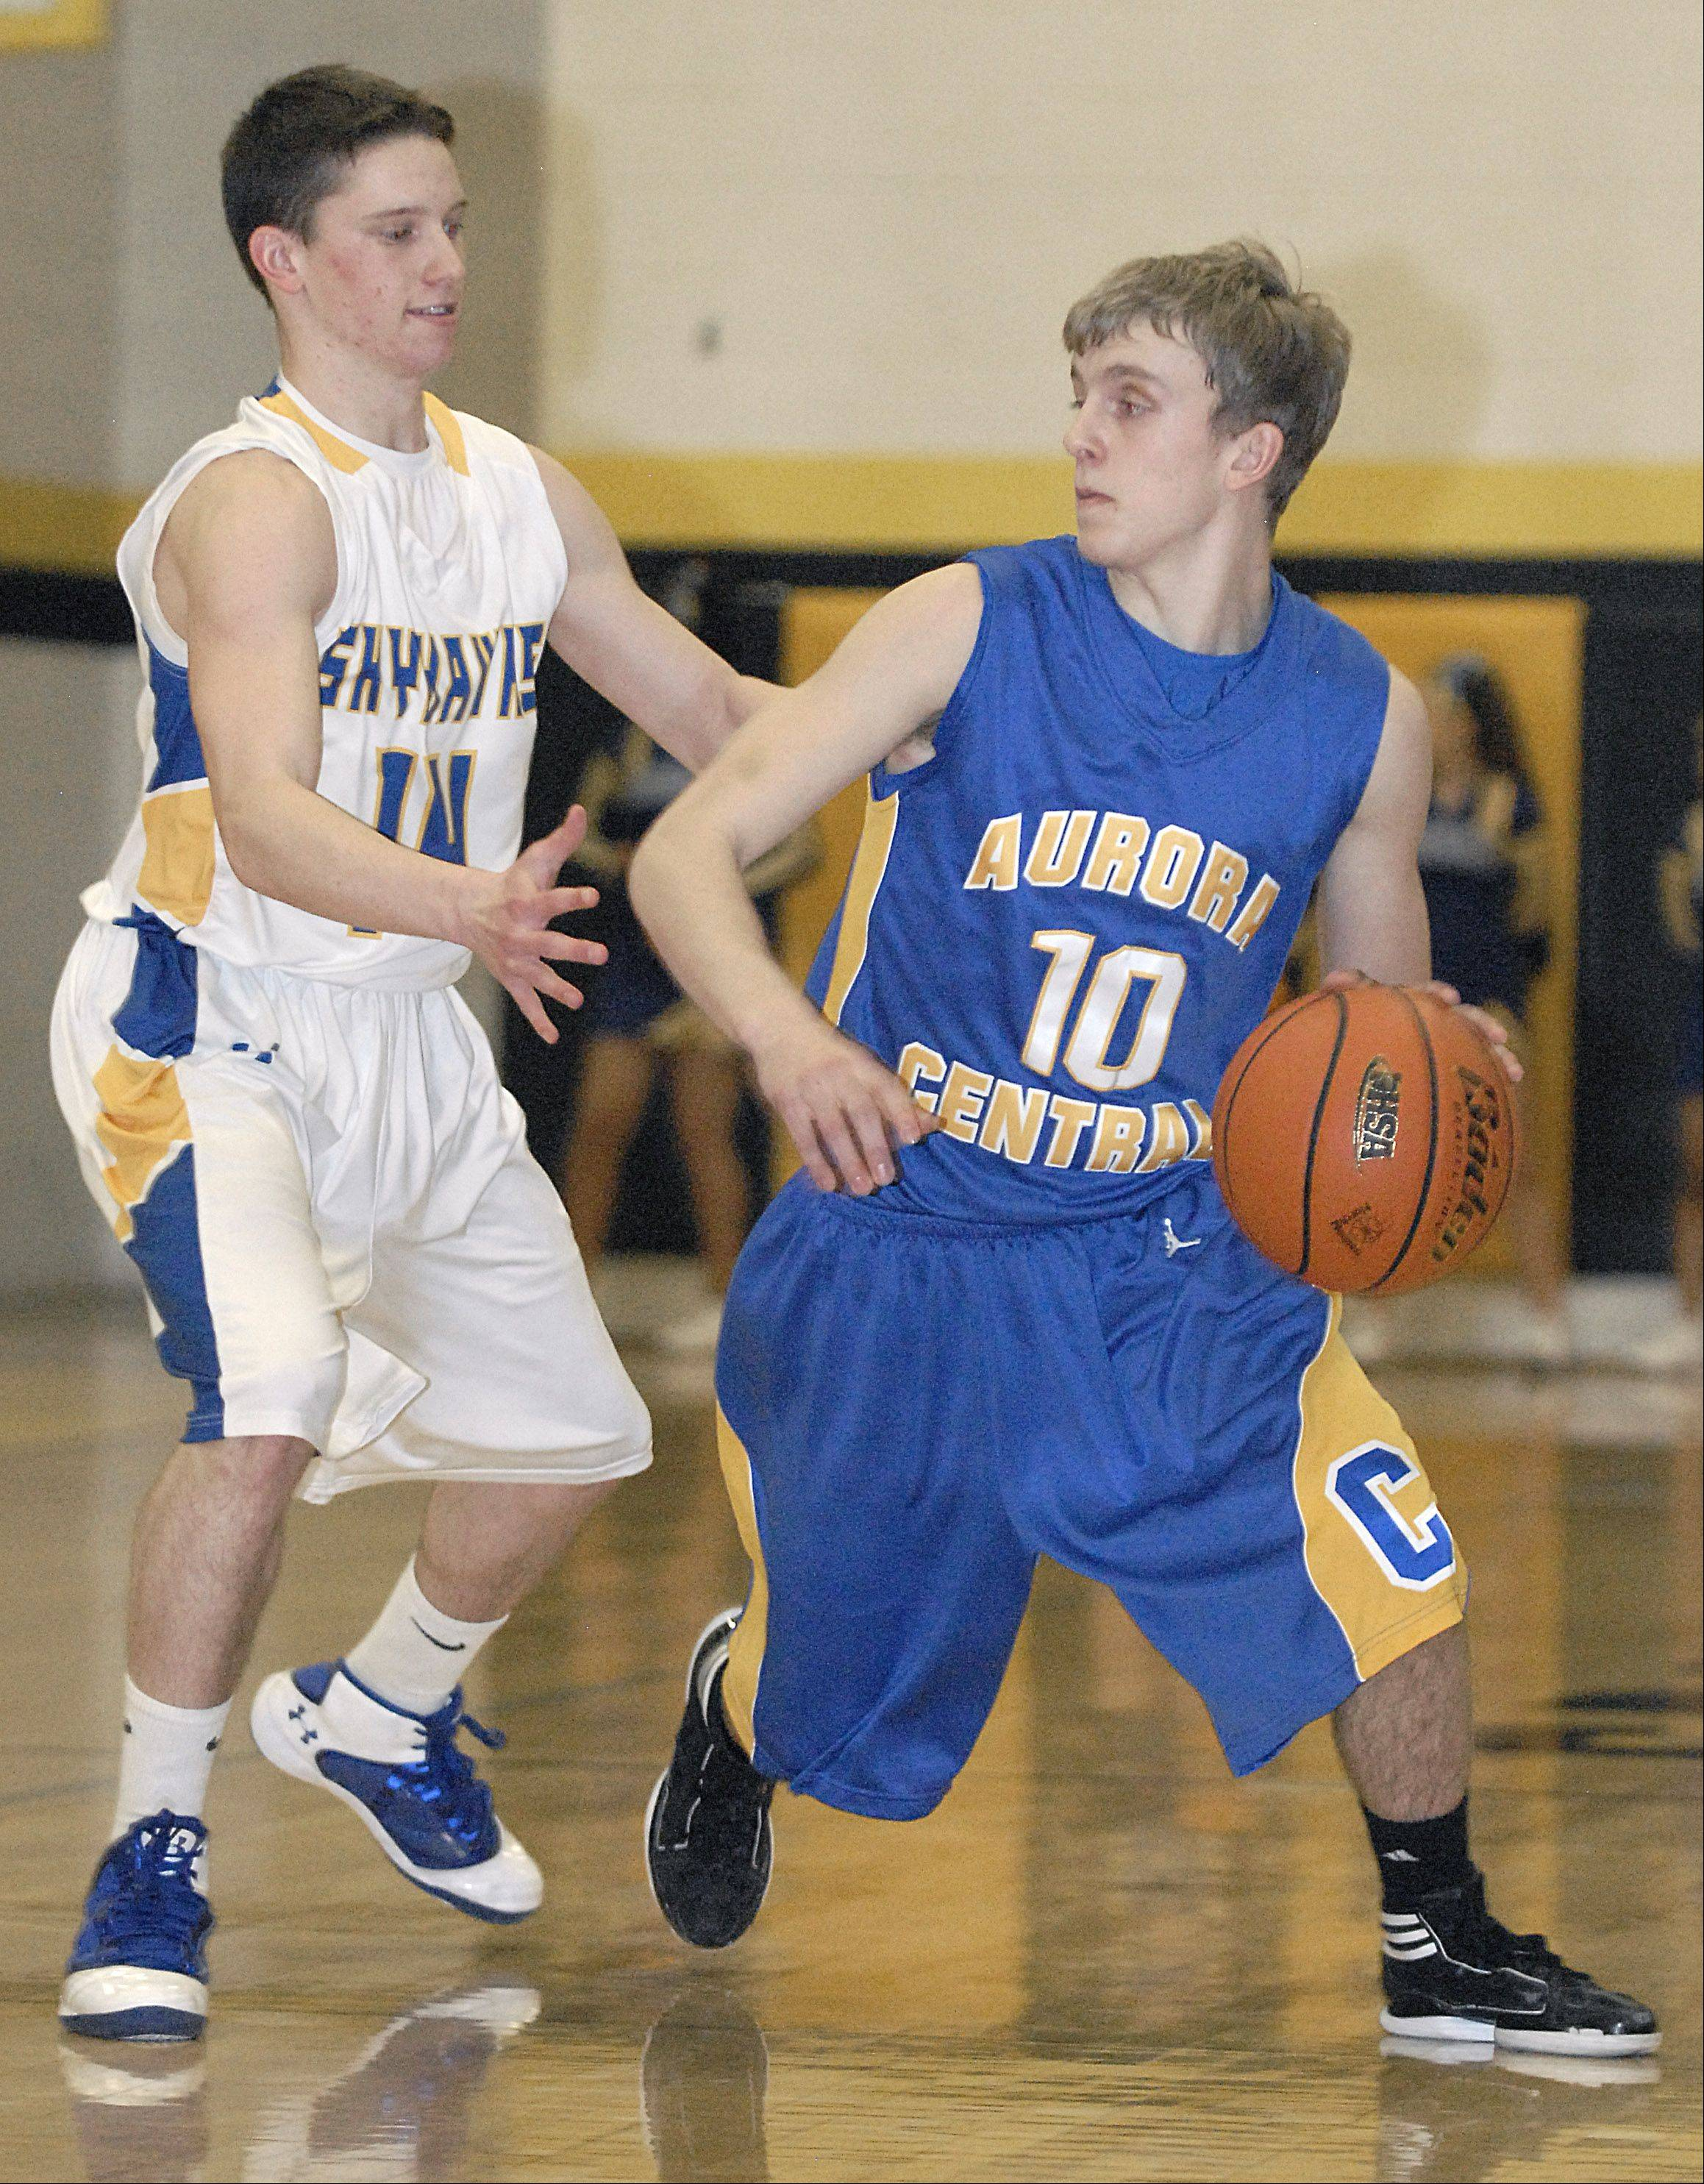 Aurora Central Catholic's Shawn Soris looks to pass around Johnsburg's Brett Toussaint in the first quarter.